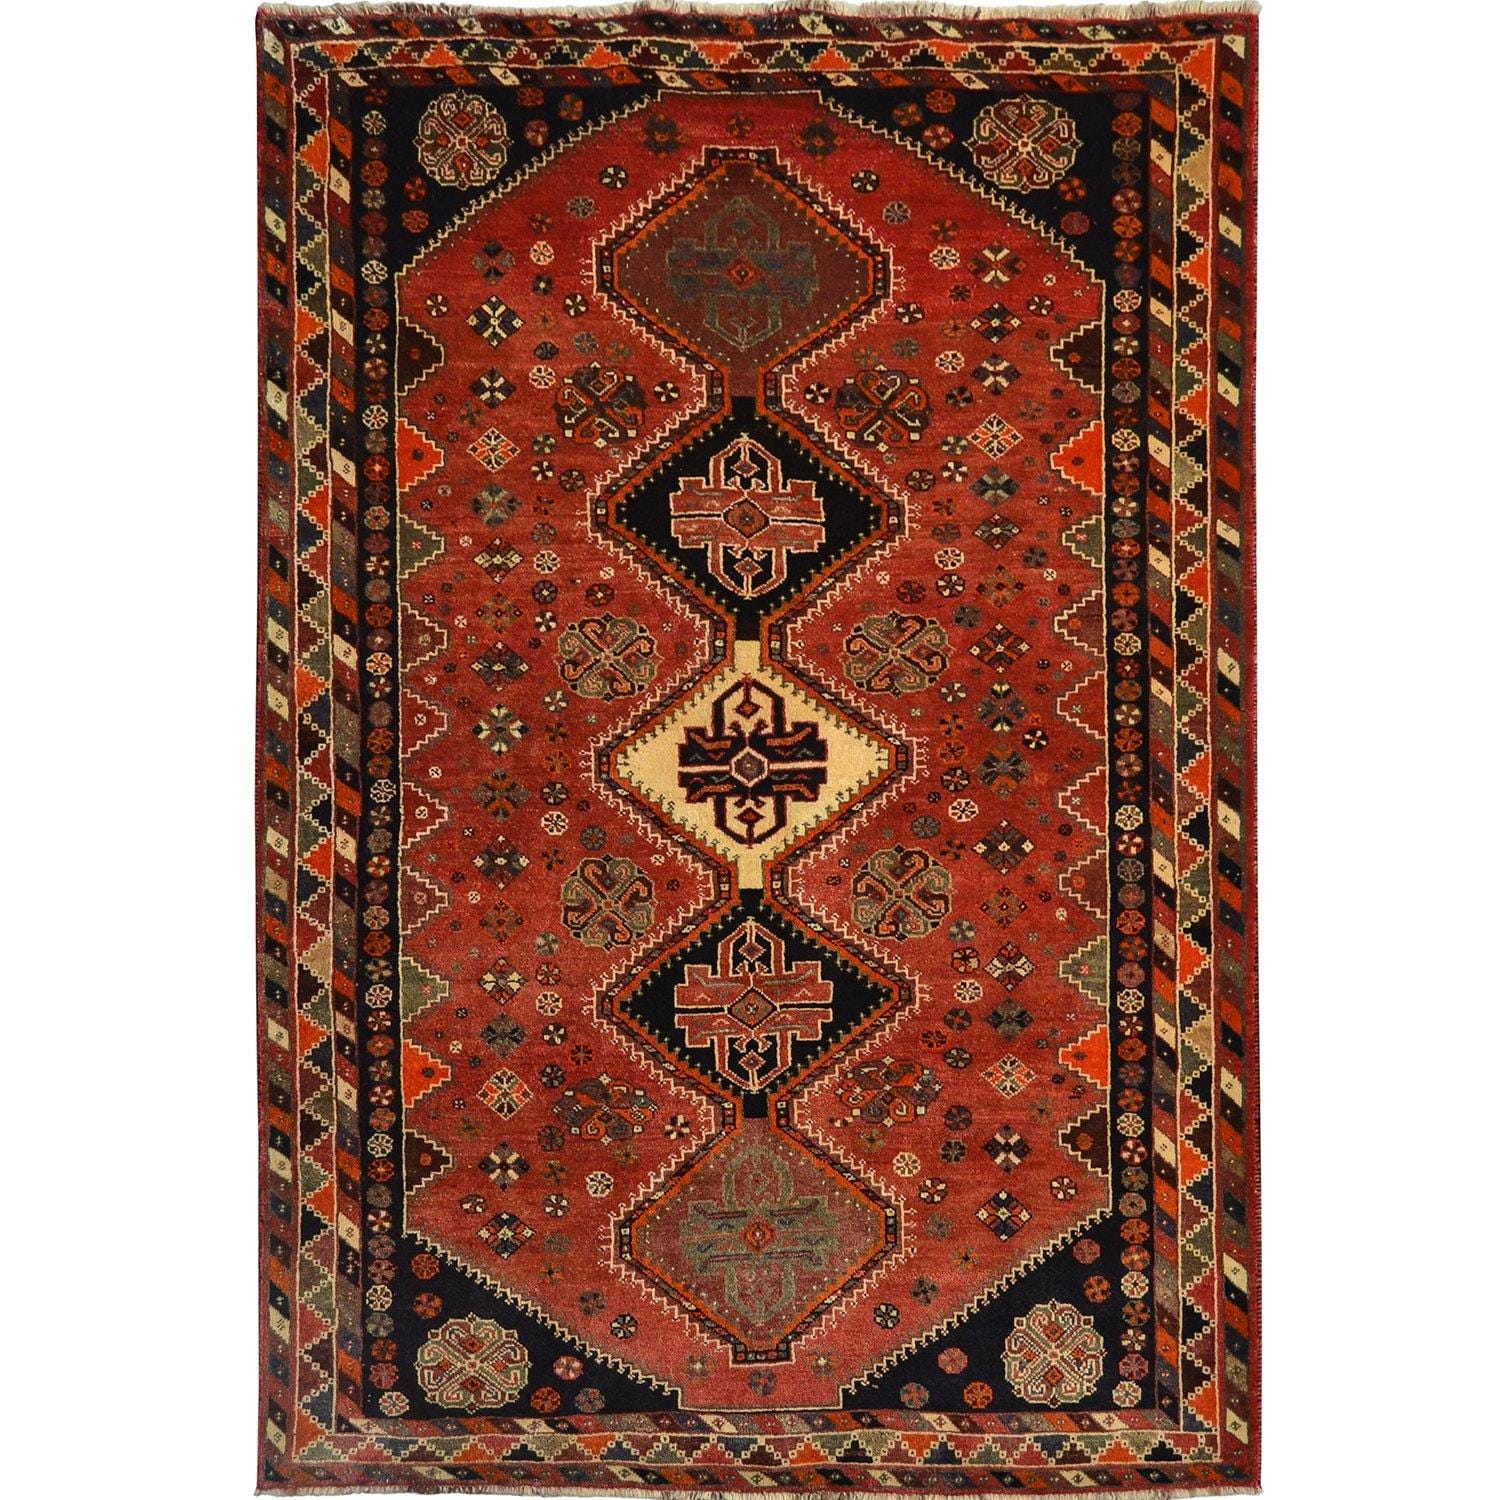 Fine Hand-knotted Persian Shiraz Wool Rug 165cm x 260cm Persian-Rug | House-of-Haghi | NewMarket | Auckland | NZ | Handmade Persian Rugs | Hand Knotted Persian Rugs